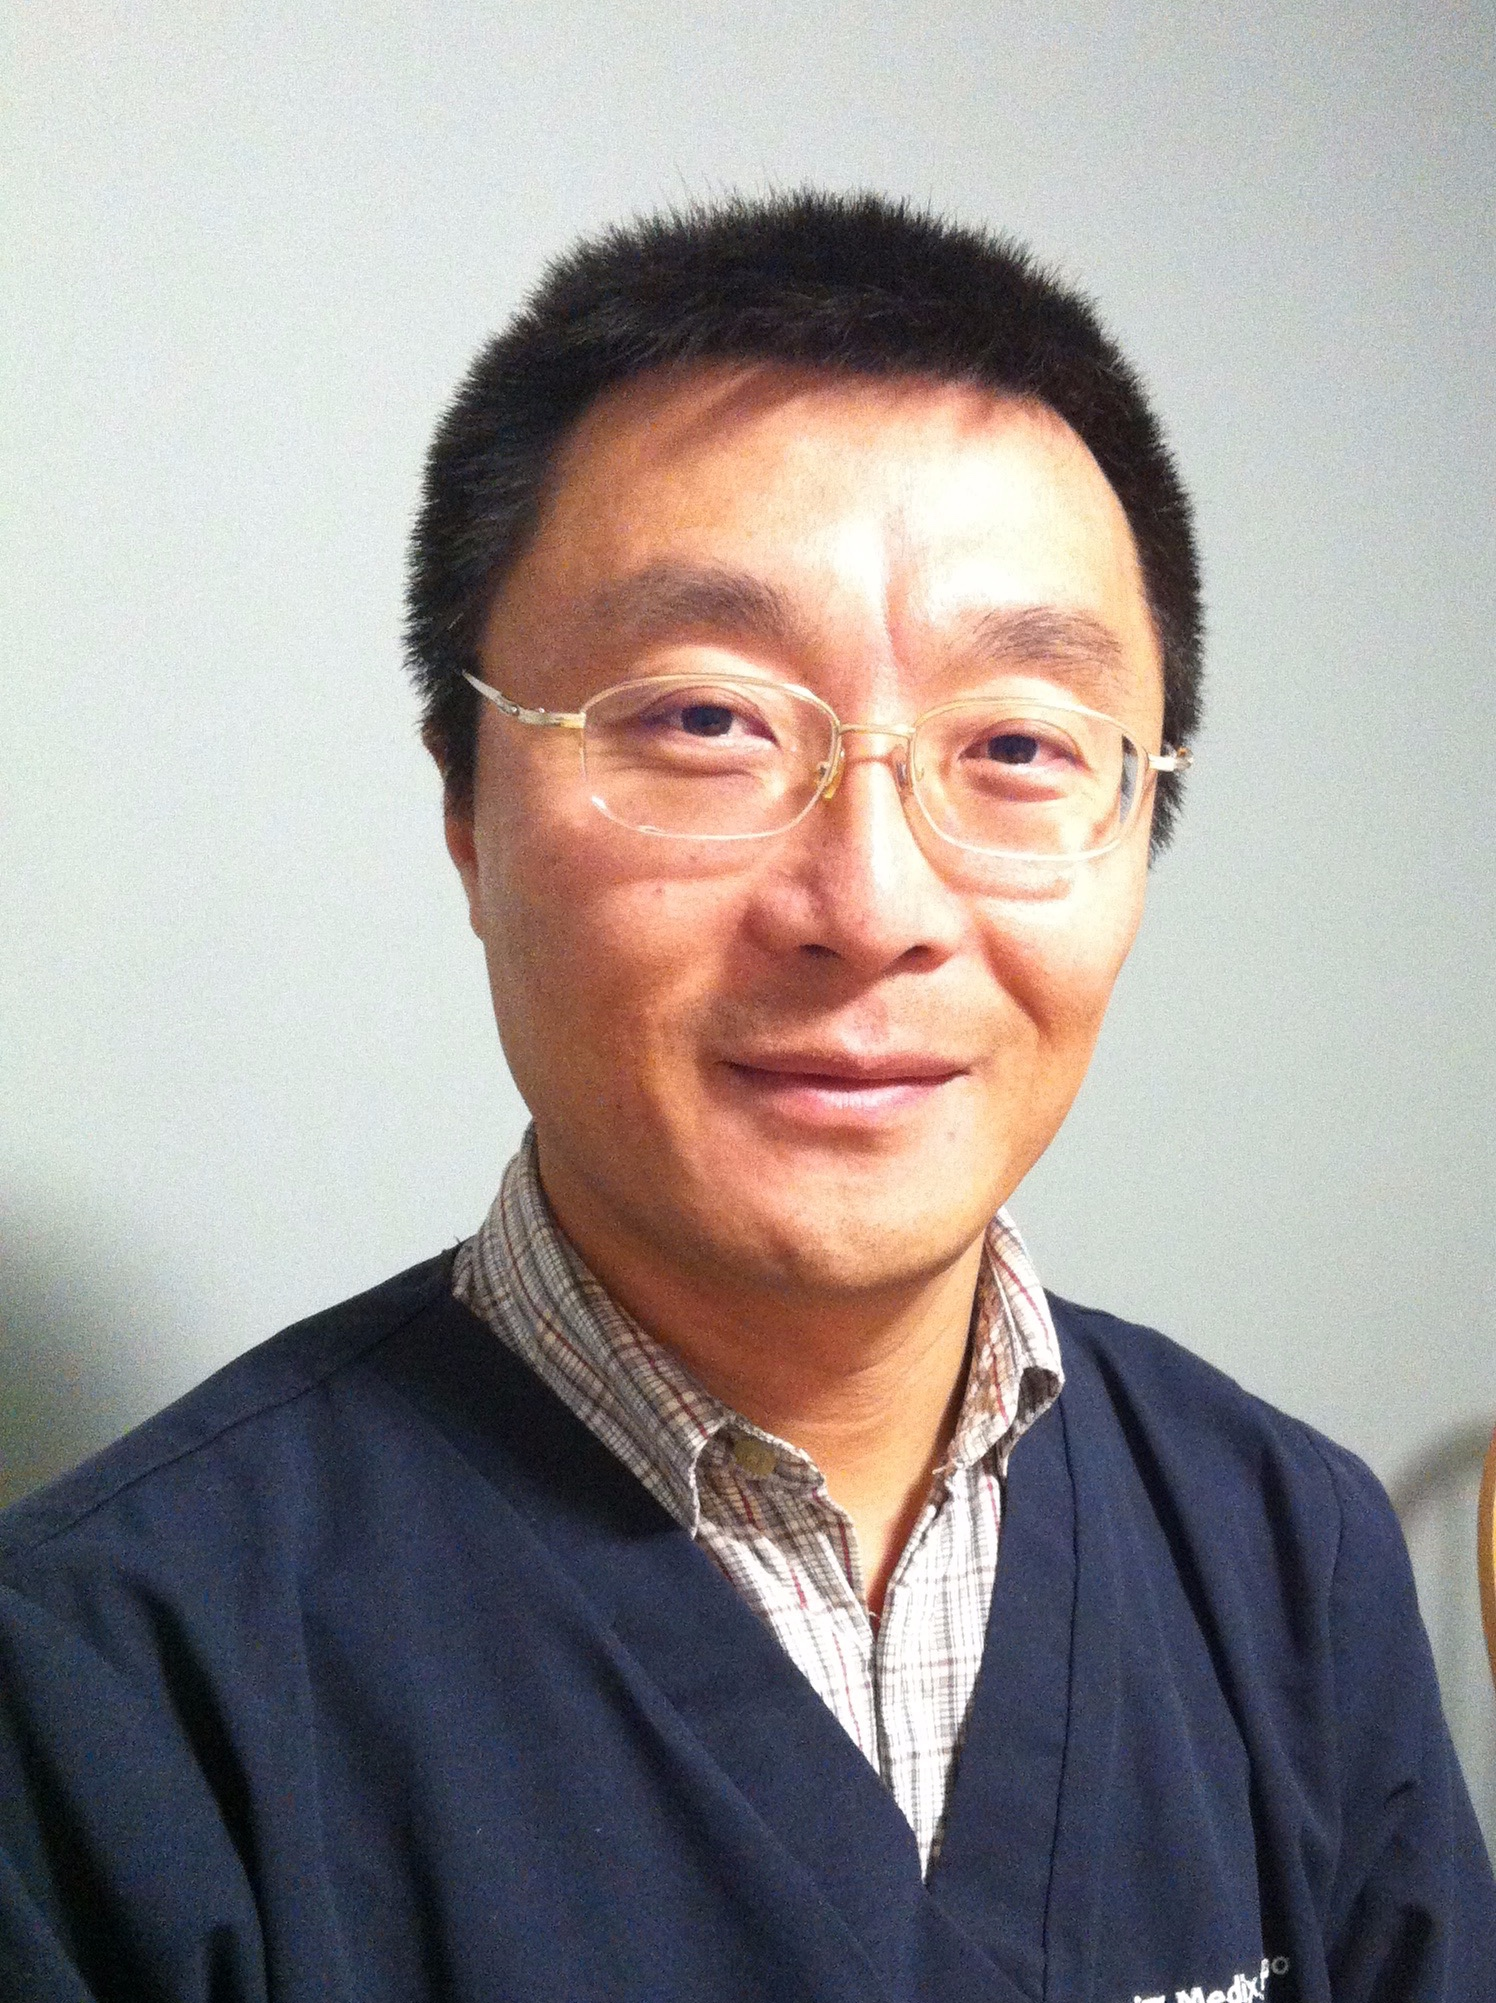 Stefan Guan RMT  Registered Massage Therapist